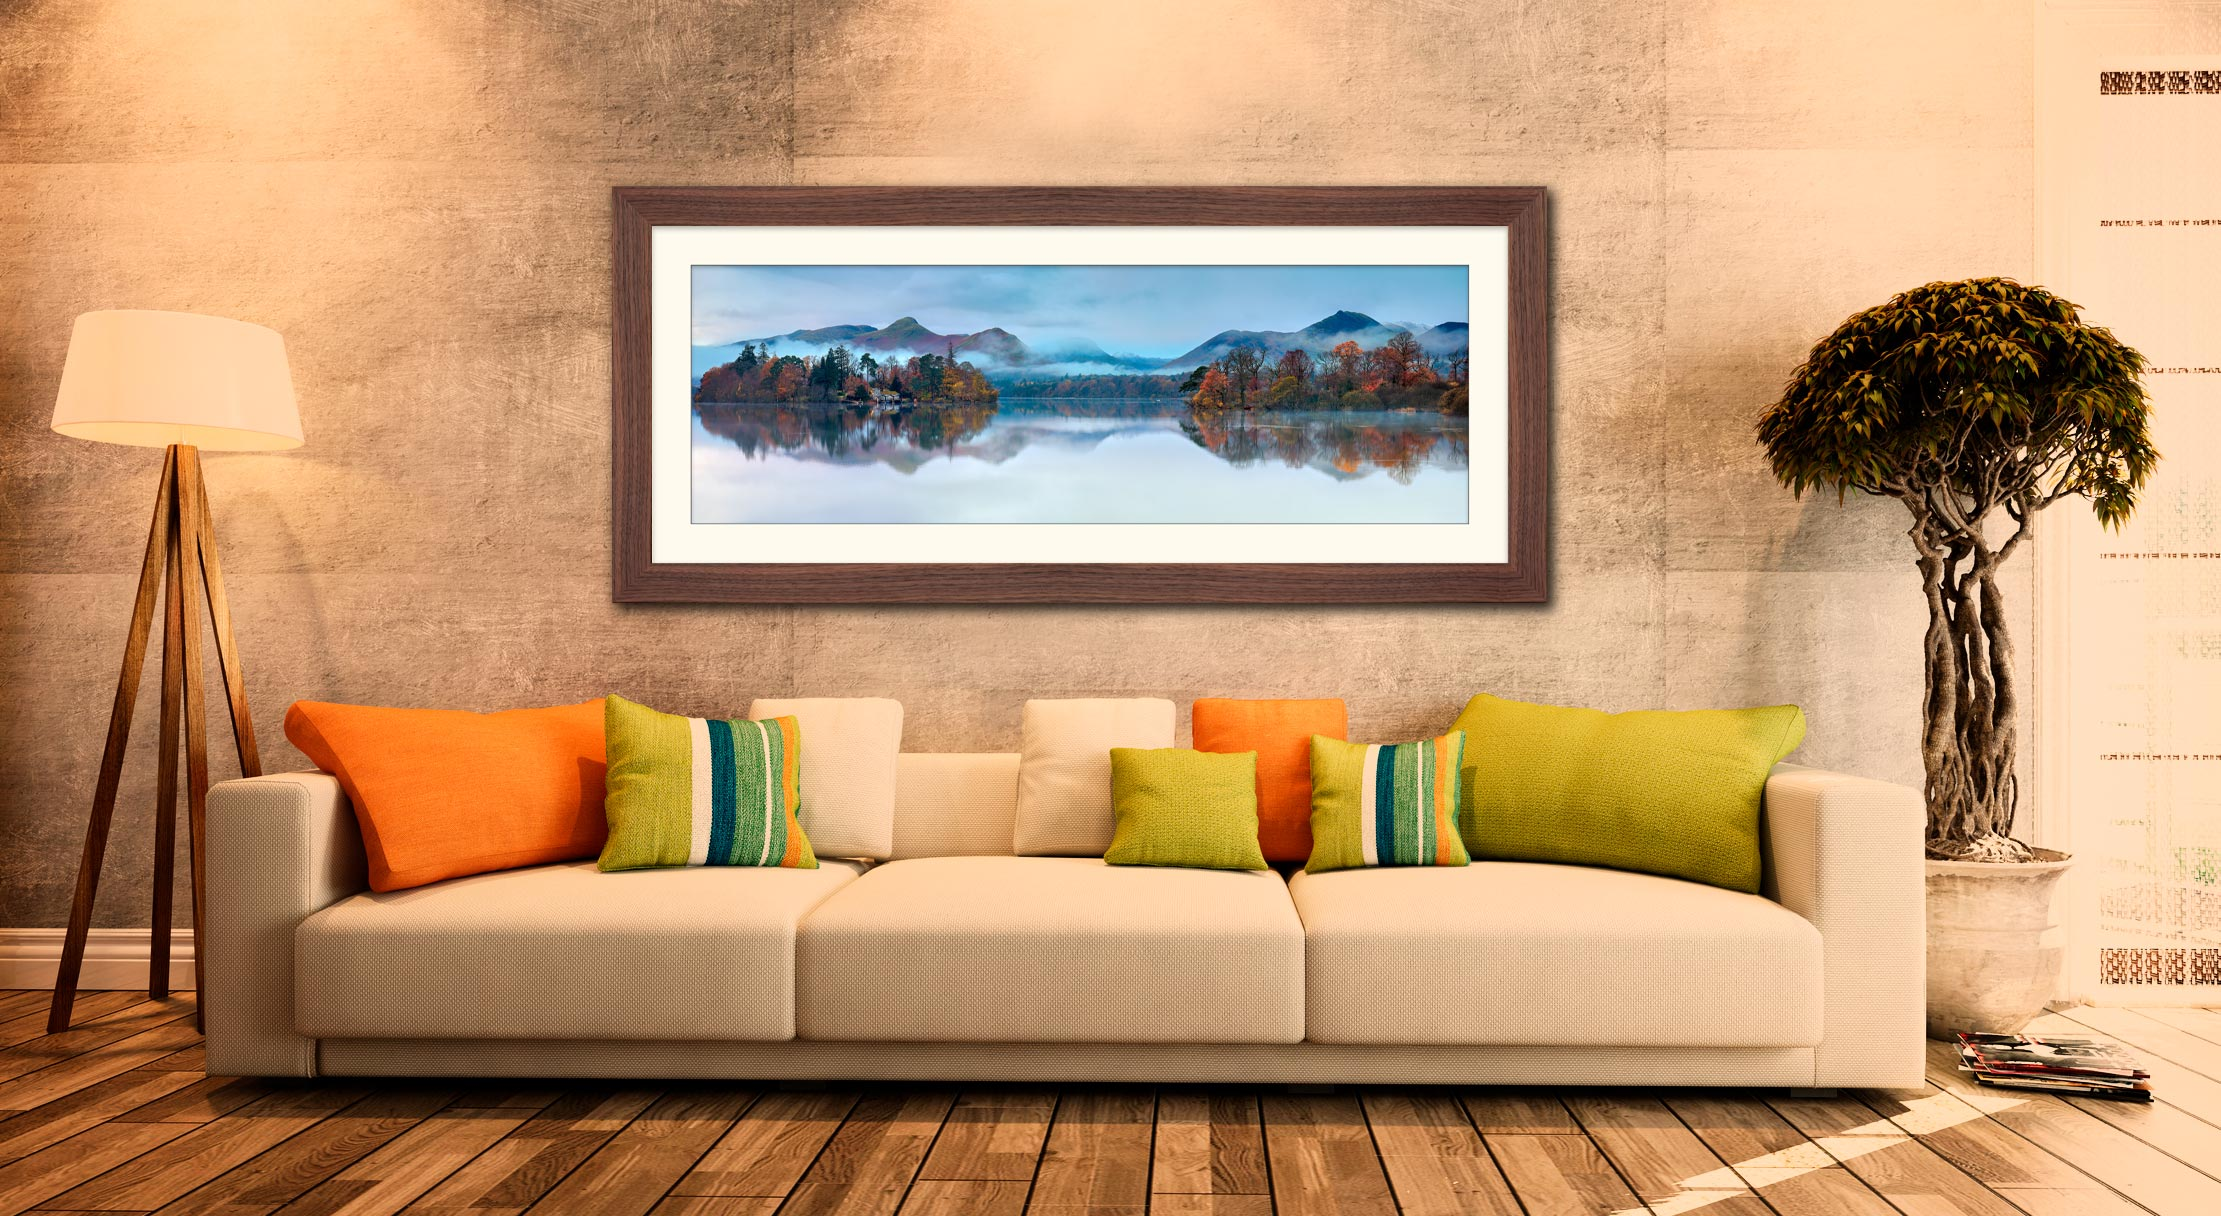 Derwent Isle Dawn Mists - Framed Print with Mount on Wall